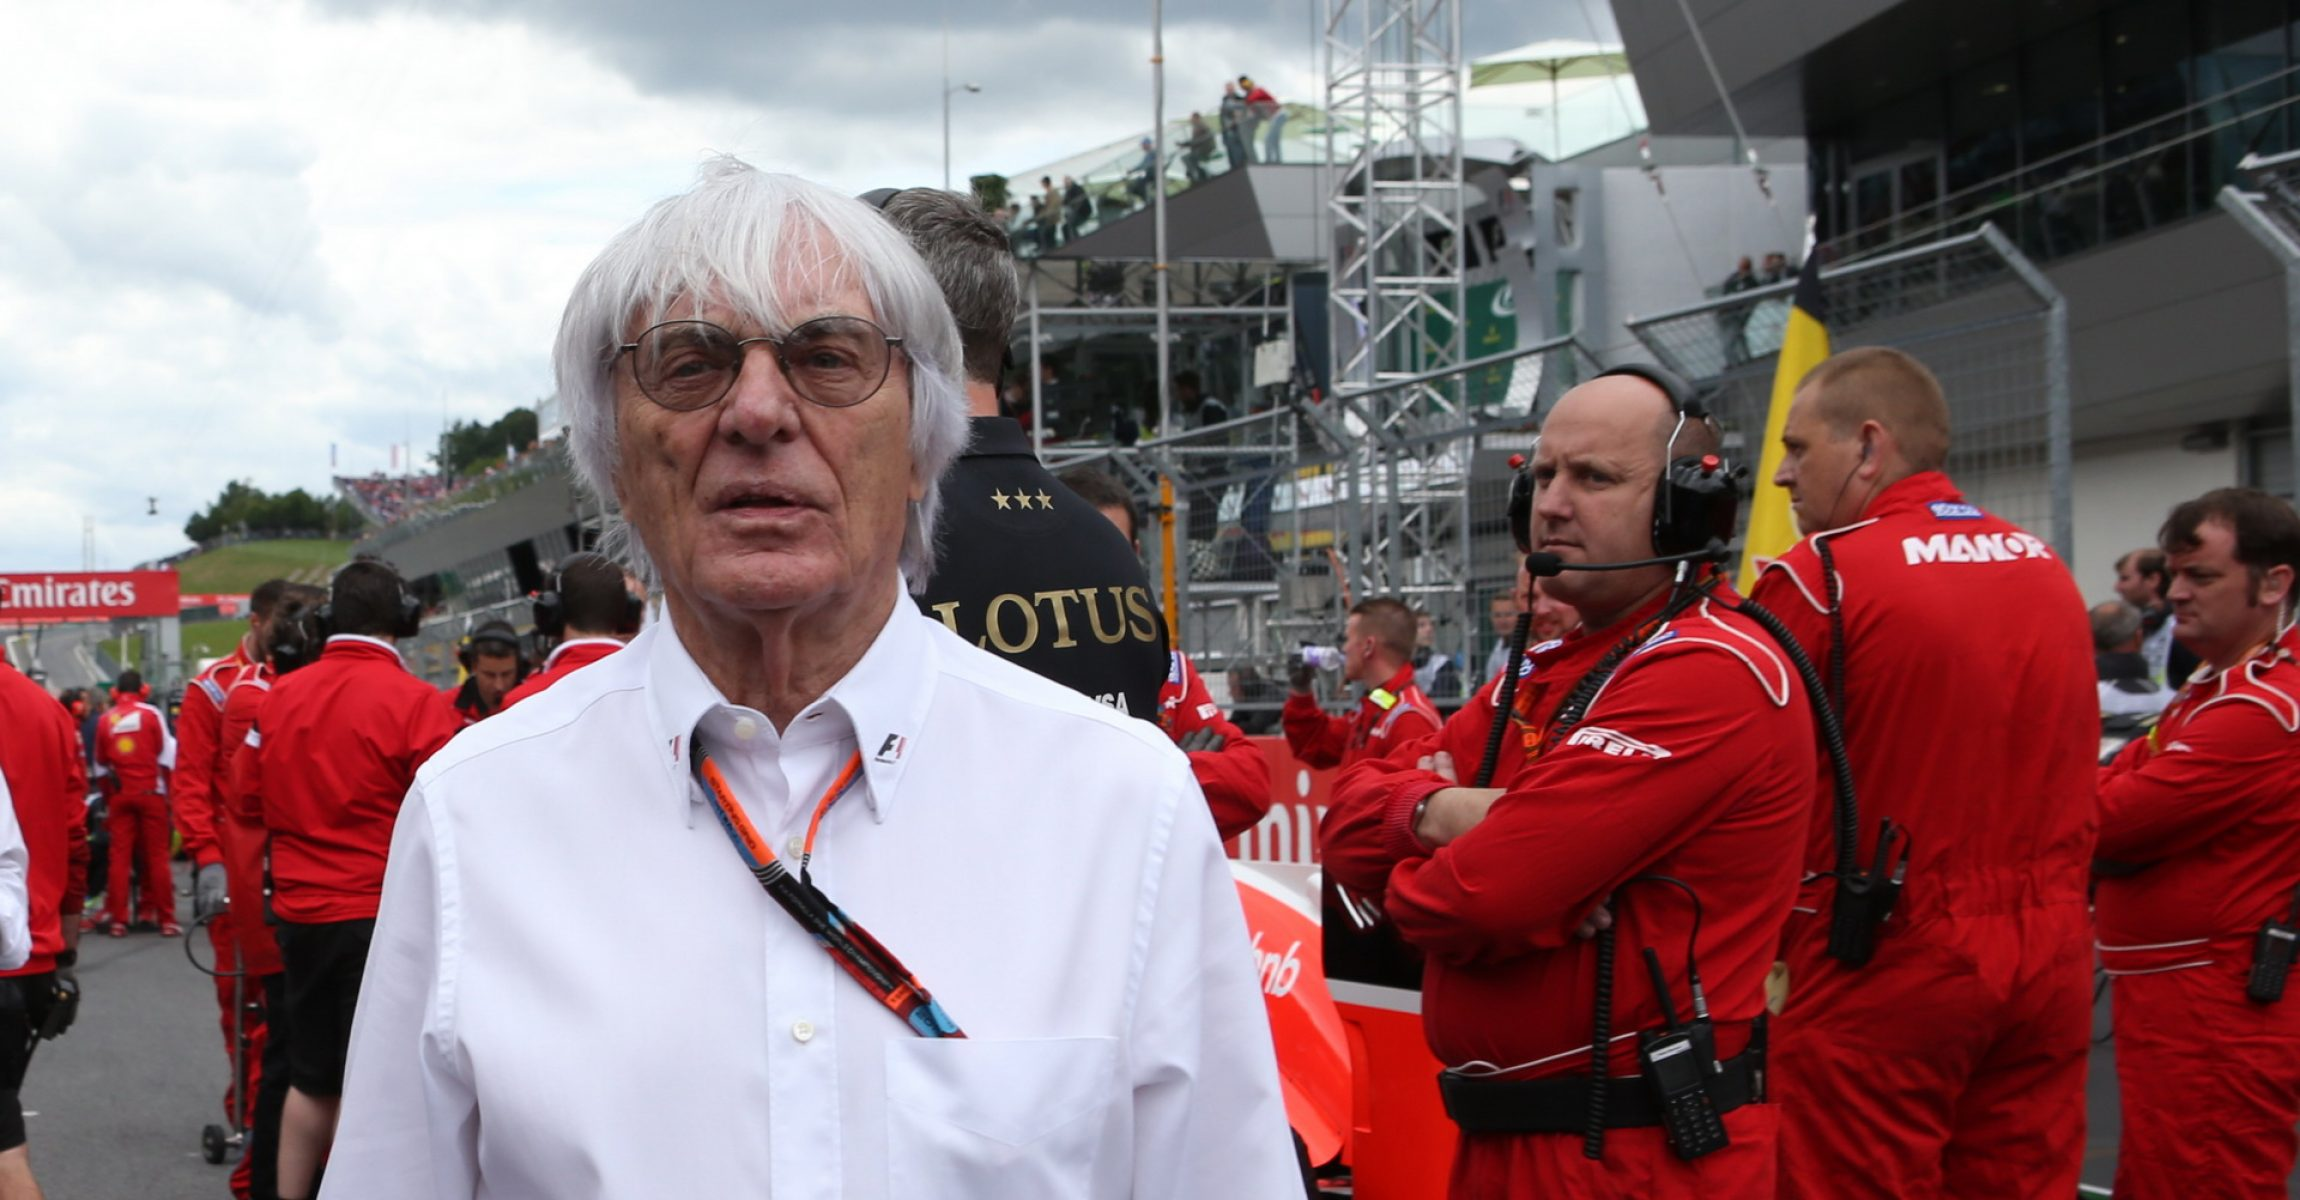 SPIELBERG,AUSTRIA,21.JUN.15 - MOTORSPORTS, FORMULA 1 - Grand Prix of Austria, Red Bull Ring. Image shows Bernie Ecclestone. Photo: GEPA pictures/ Andreas Pranter - For editorial use only. Image is free of charge.